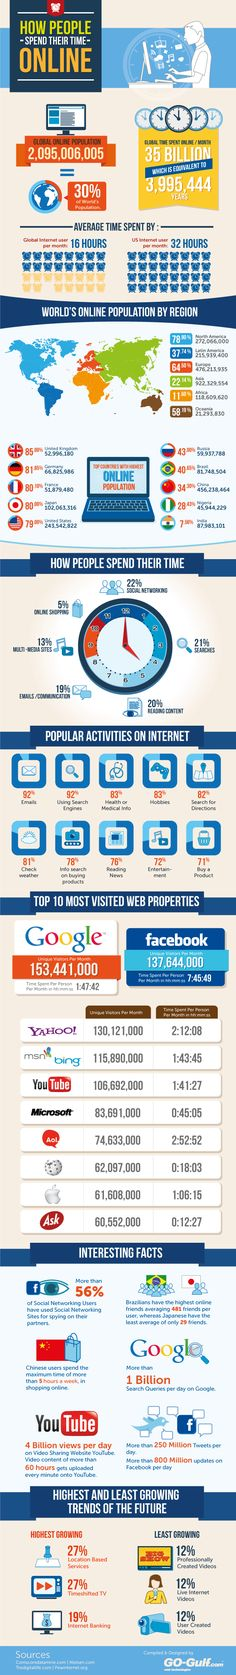 How social media users spend their time online...do you agree?